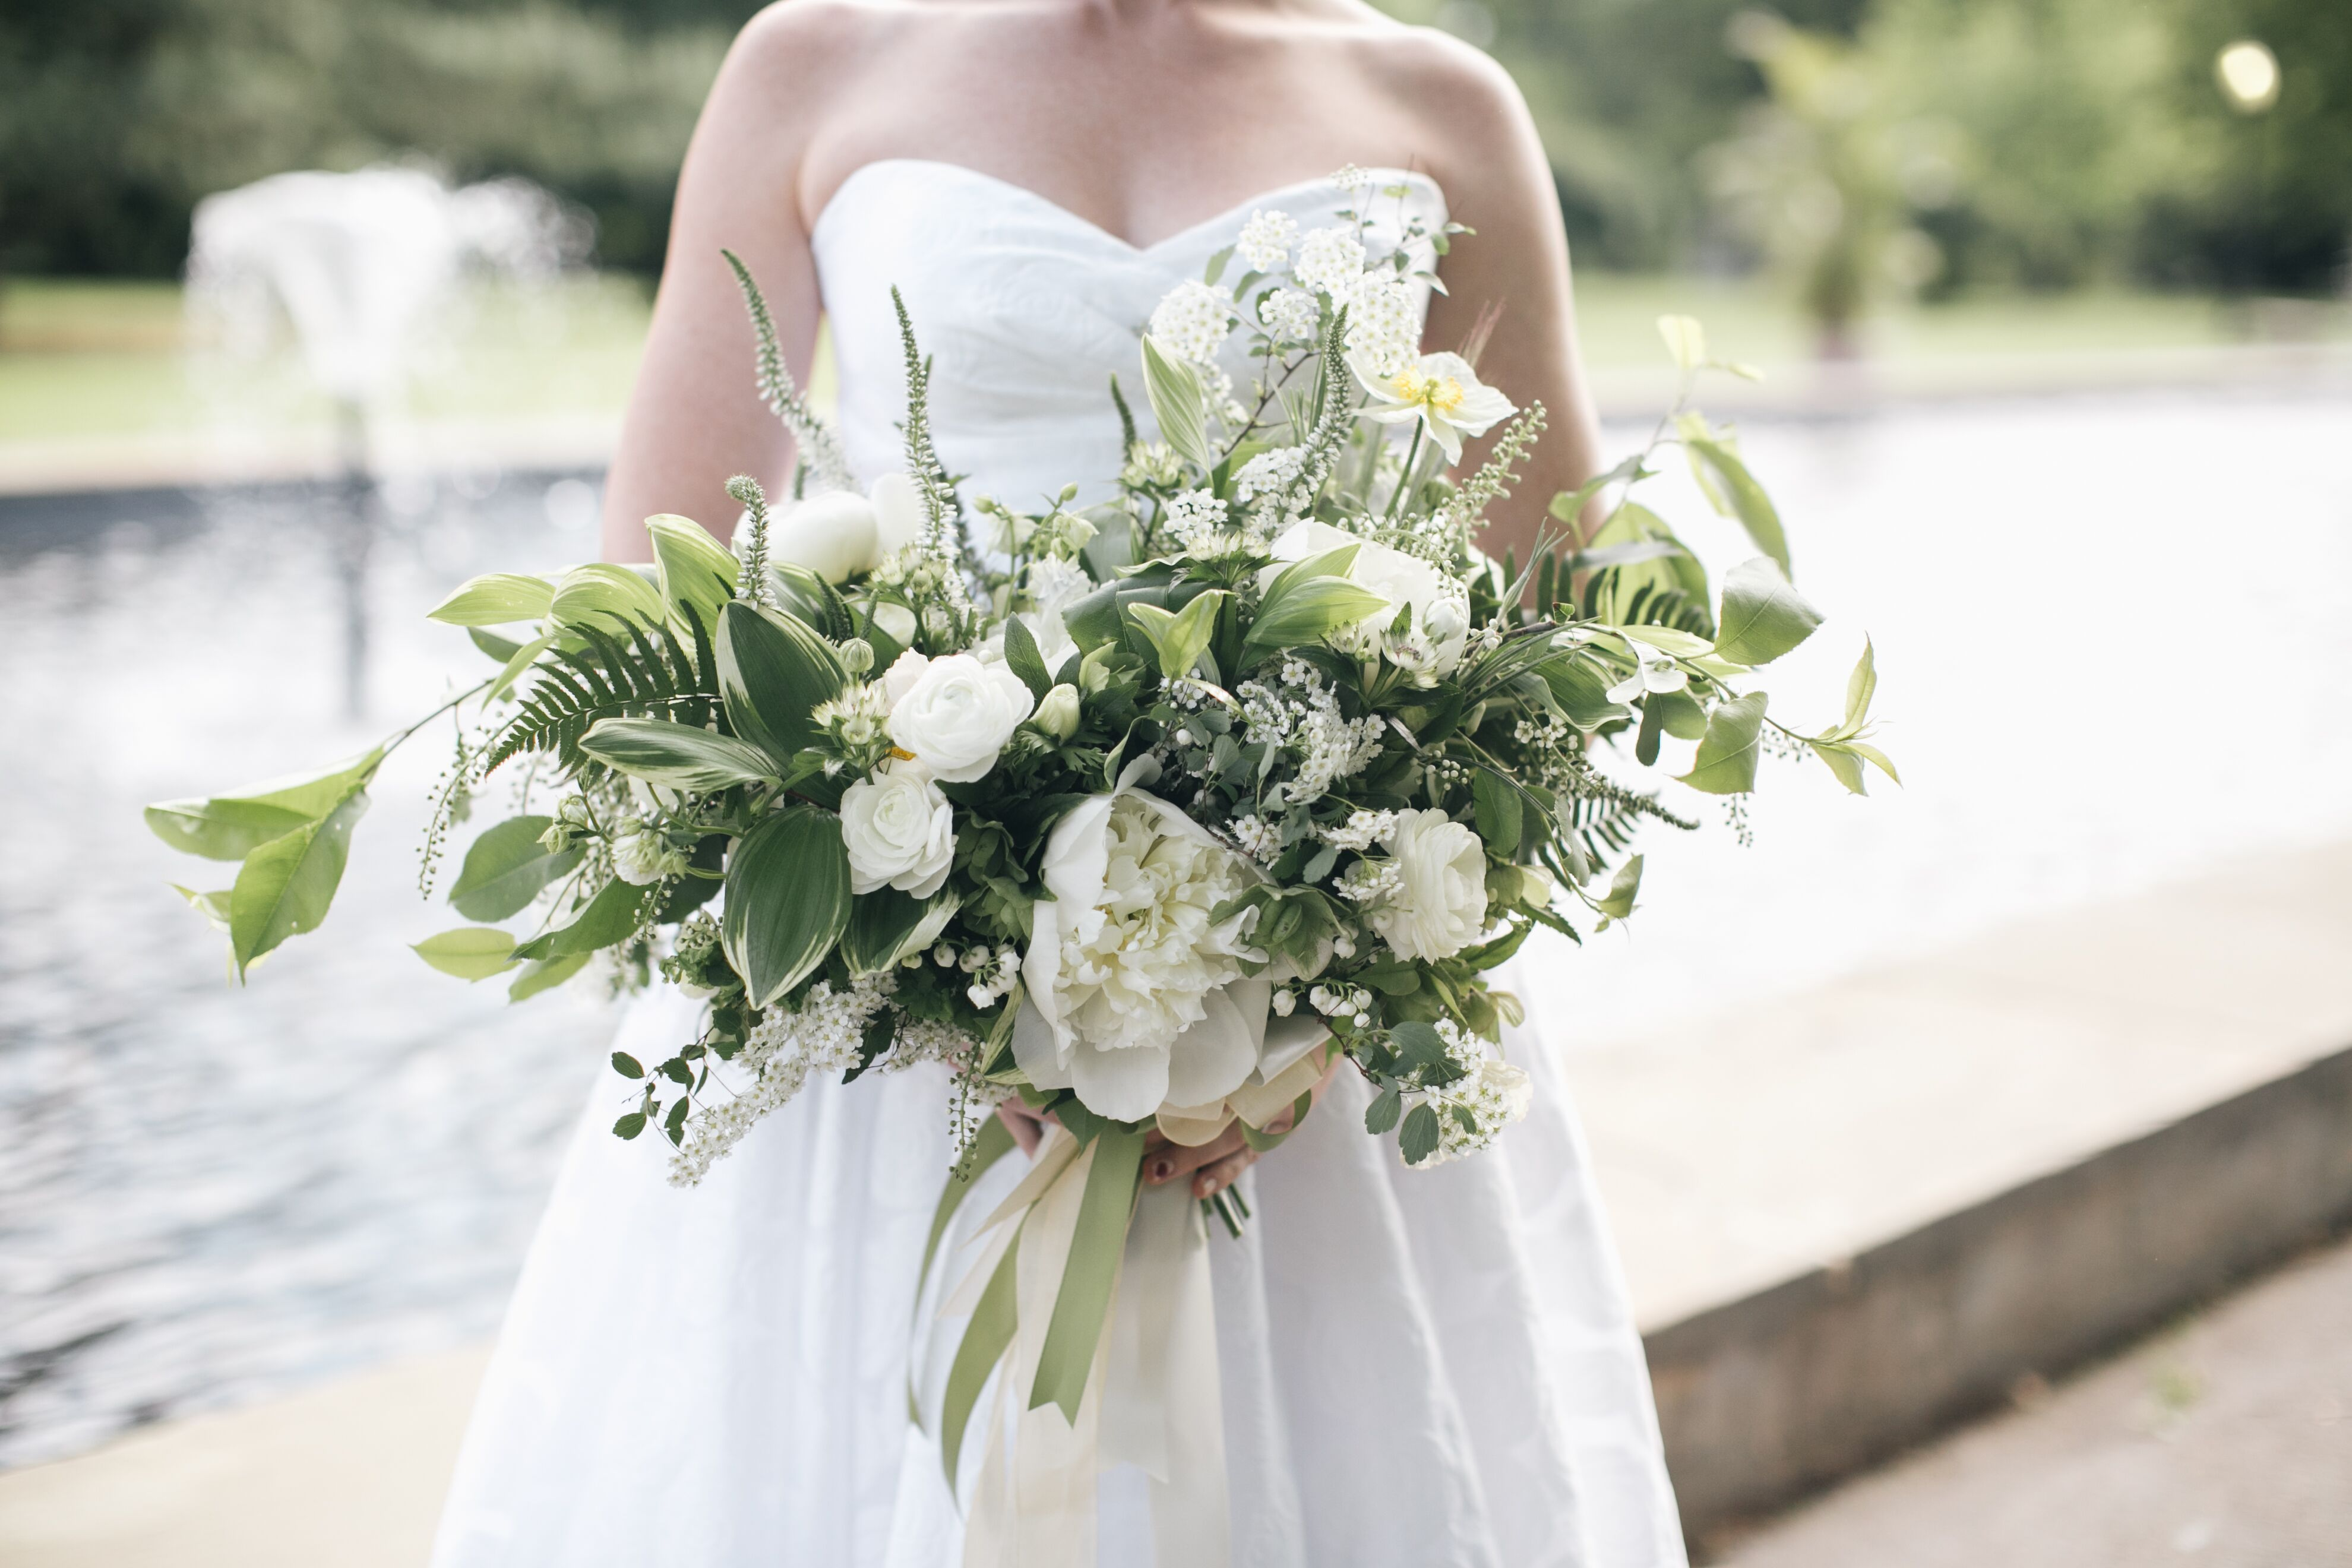 Green And White Natural Bouquet With Peonies